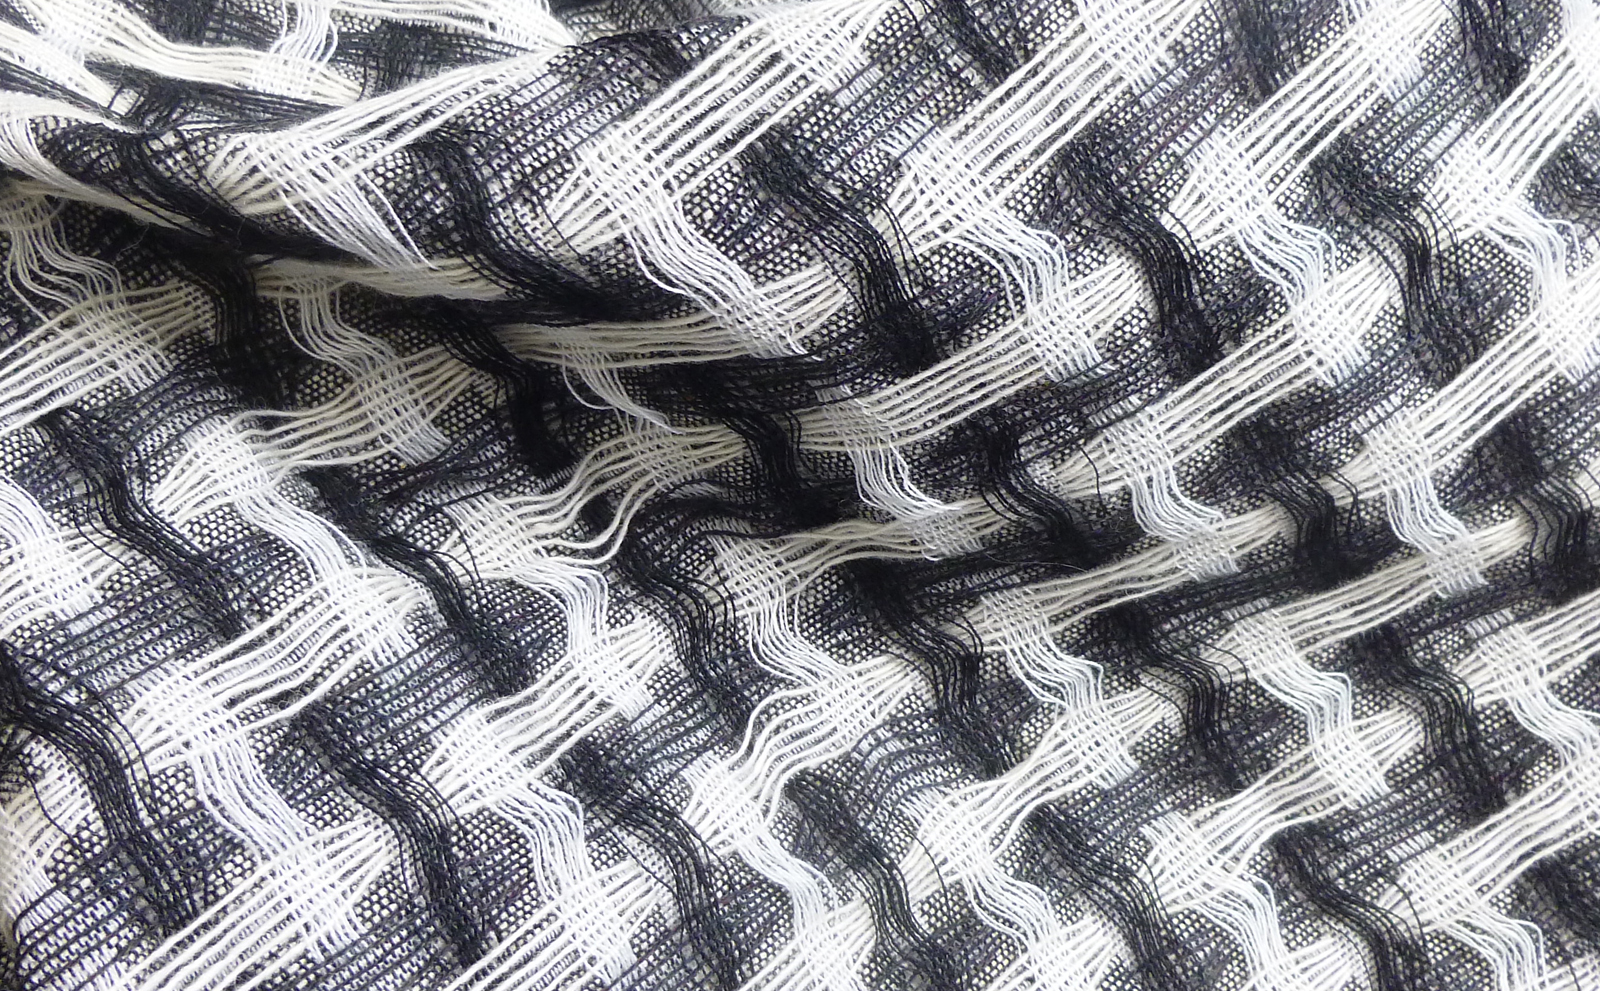 Jacquard woven interlaced fabric. Cashmere and wool